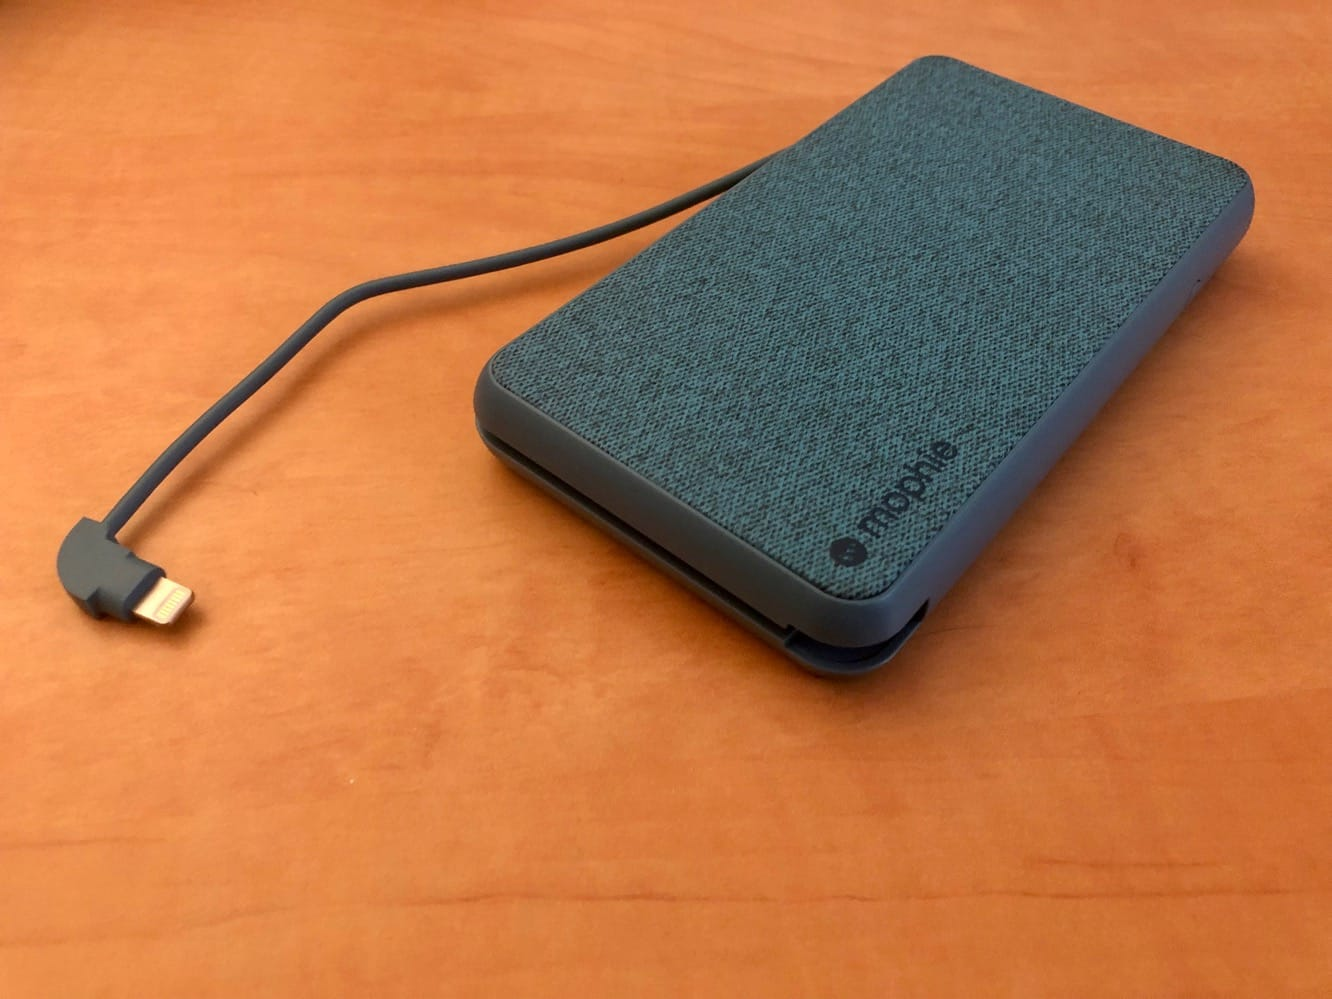 Review: Mophie Powerstation Plus XL 10,000 mAh Portable Charger with Lightning and Wireless Charging